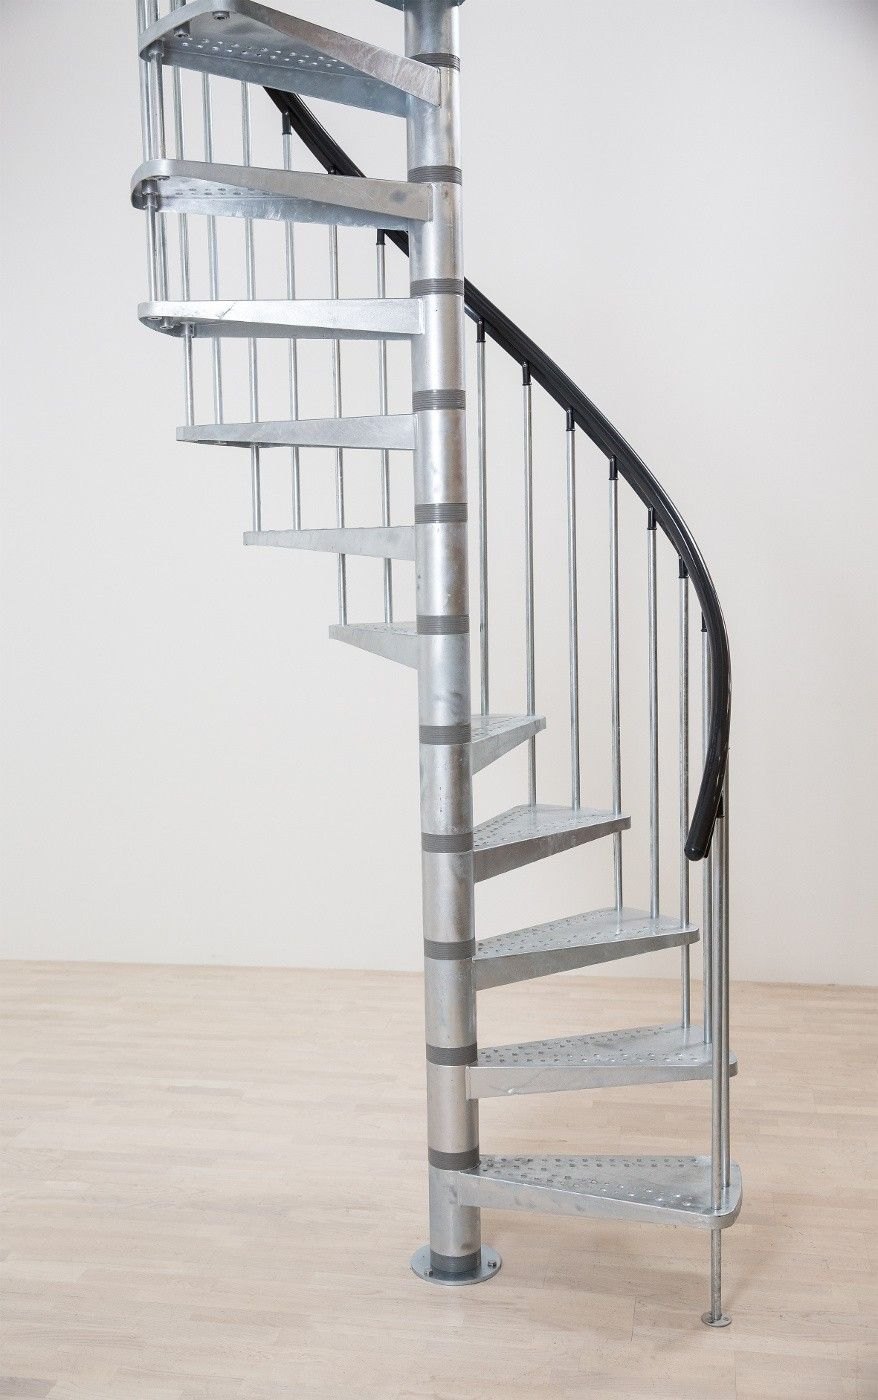 Dolle Toronto V3 Spiral Stair Kit Available In 2